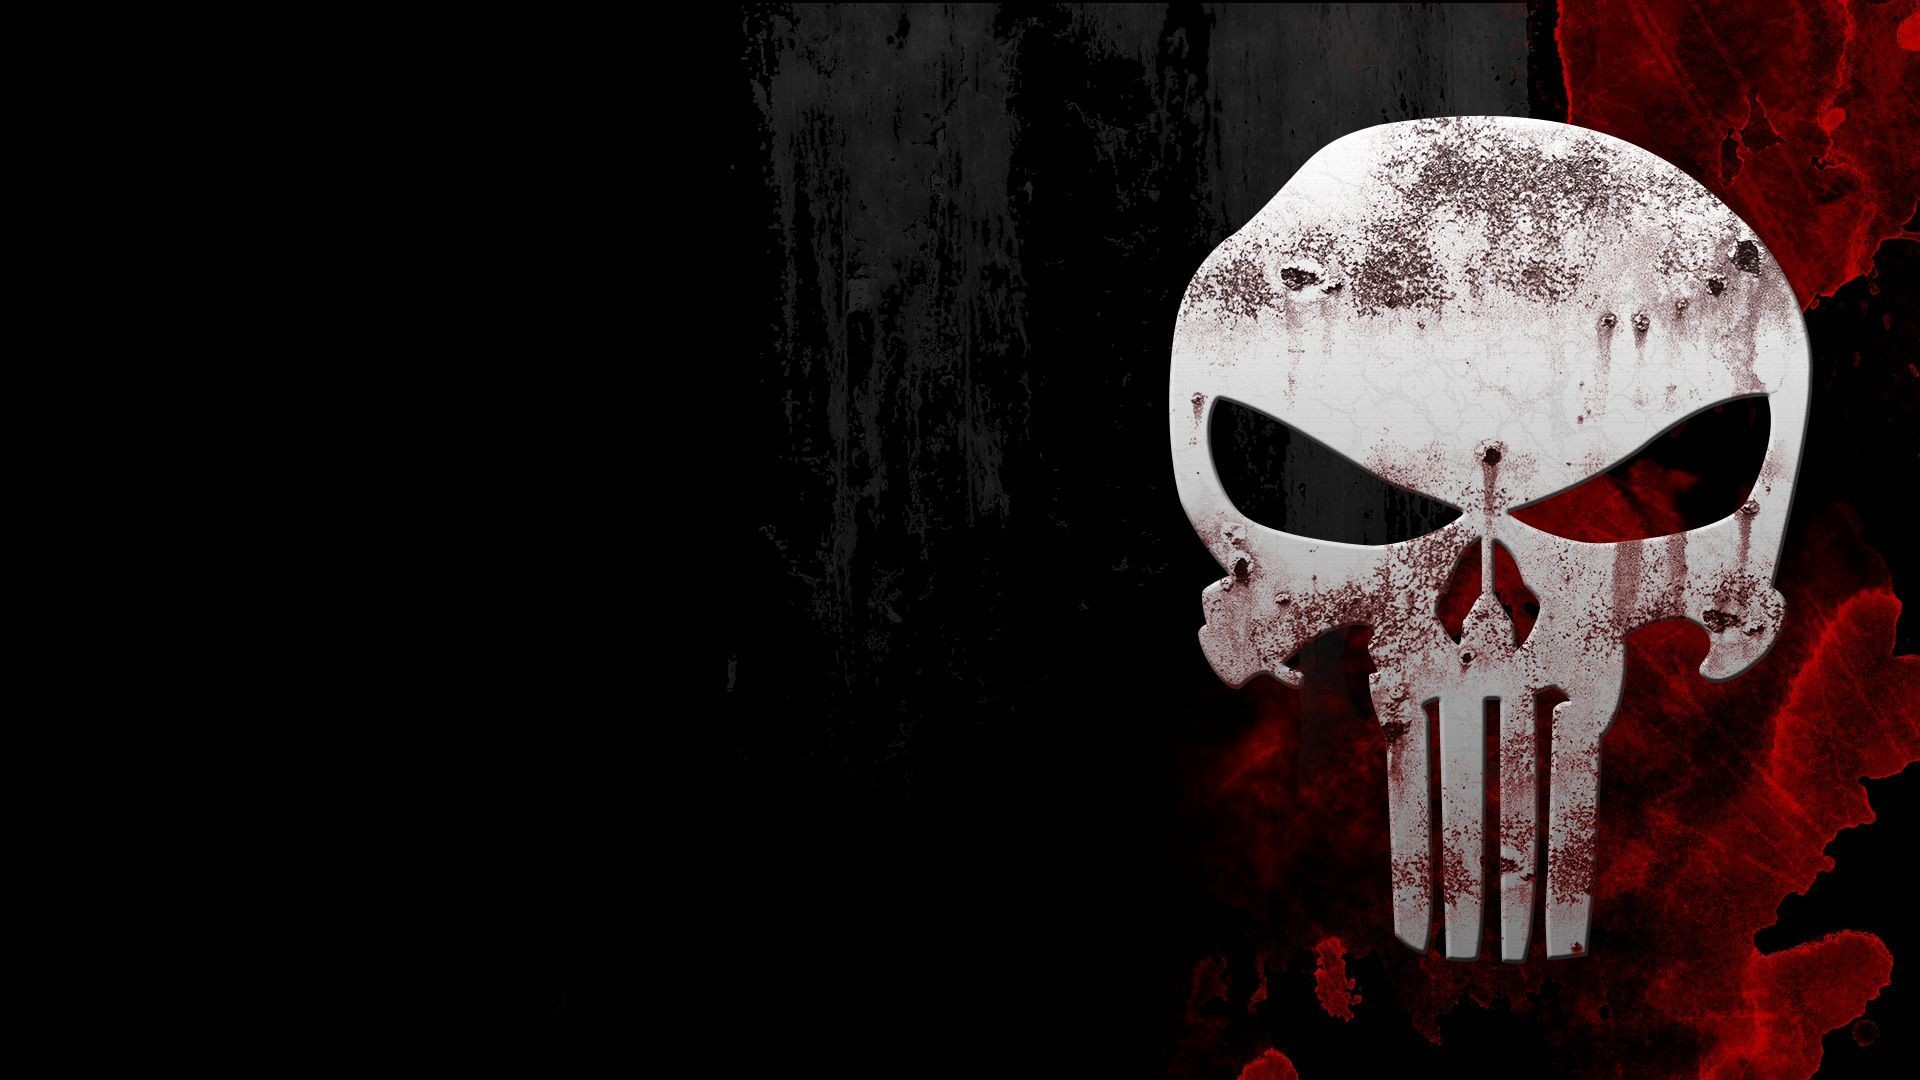 2016 The Punisher HDQ Wallpapers | KB.iPT Wallpapers